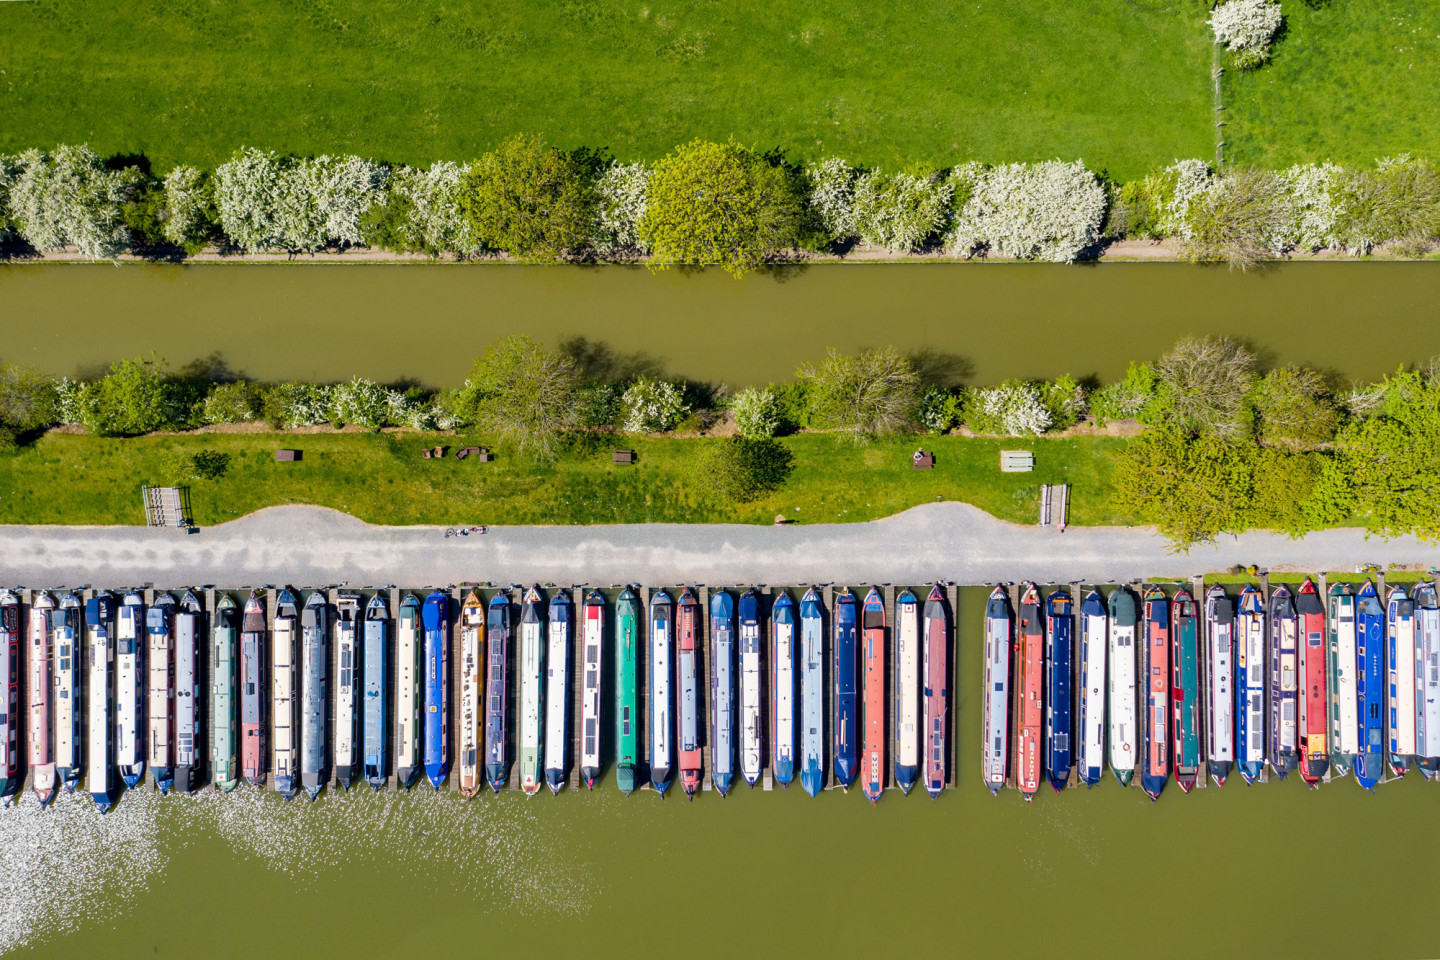 Canal boats lining the Grand Union Canal at Crick, Northamptonshire. They can only be used for essential travel. © Geoff Robinson